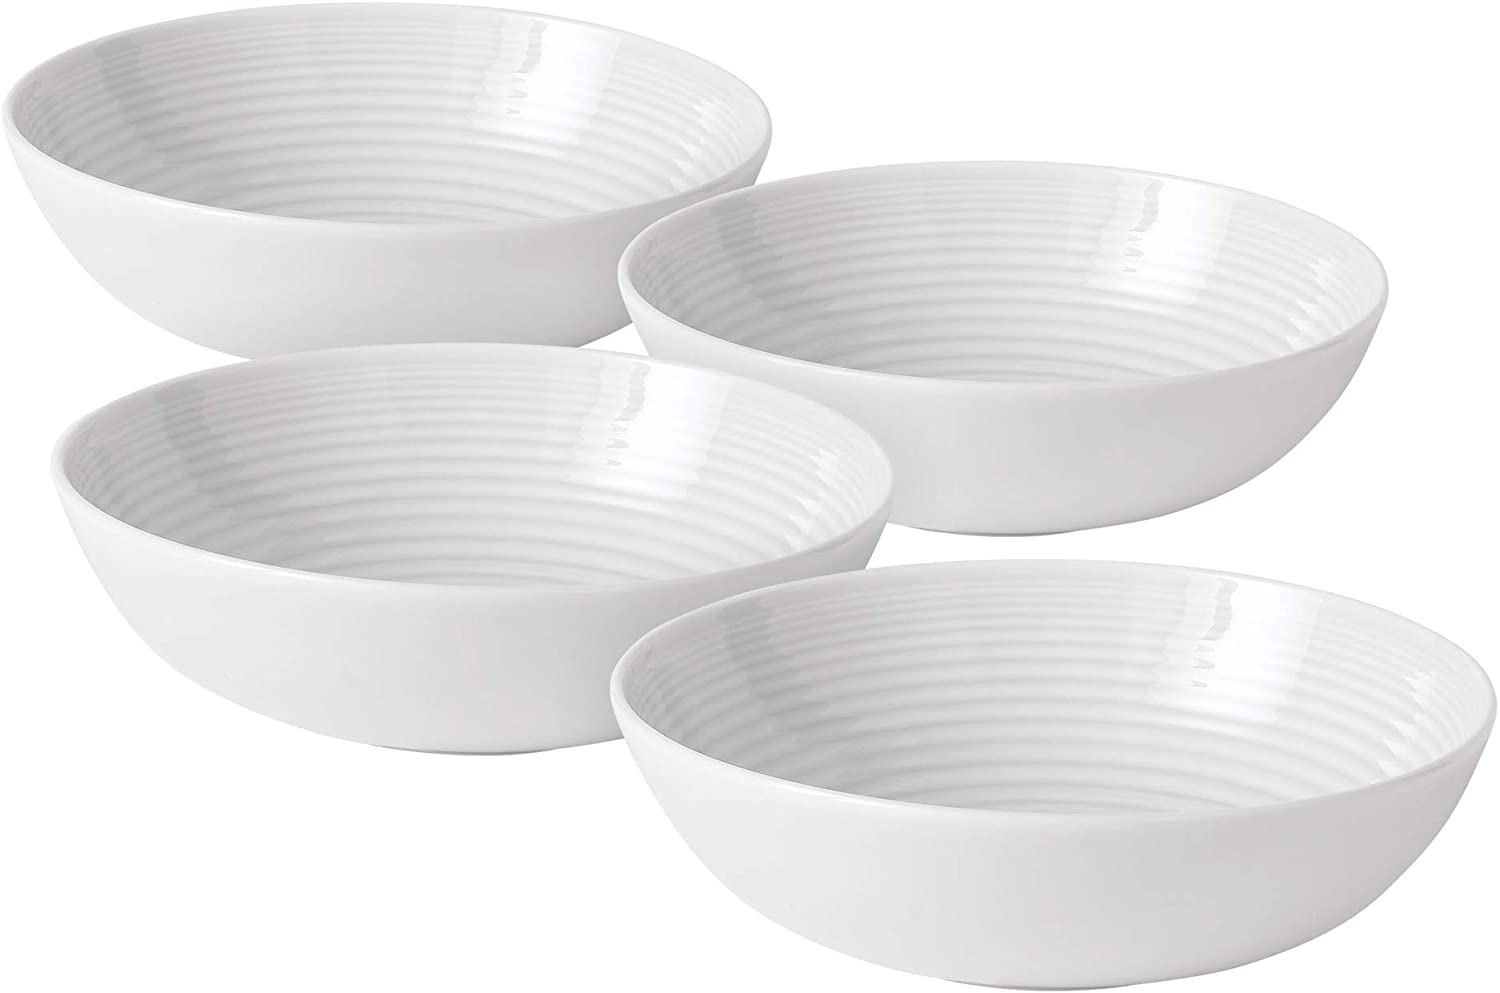 Royal Doulton Ramsay Maze White Set of 4 Pasta Bowls